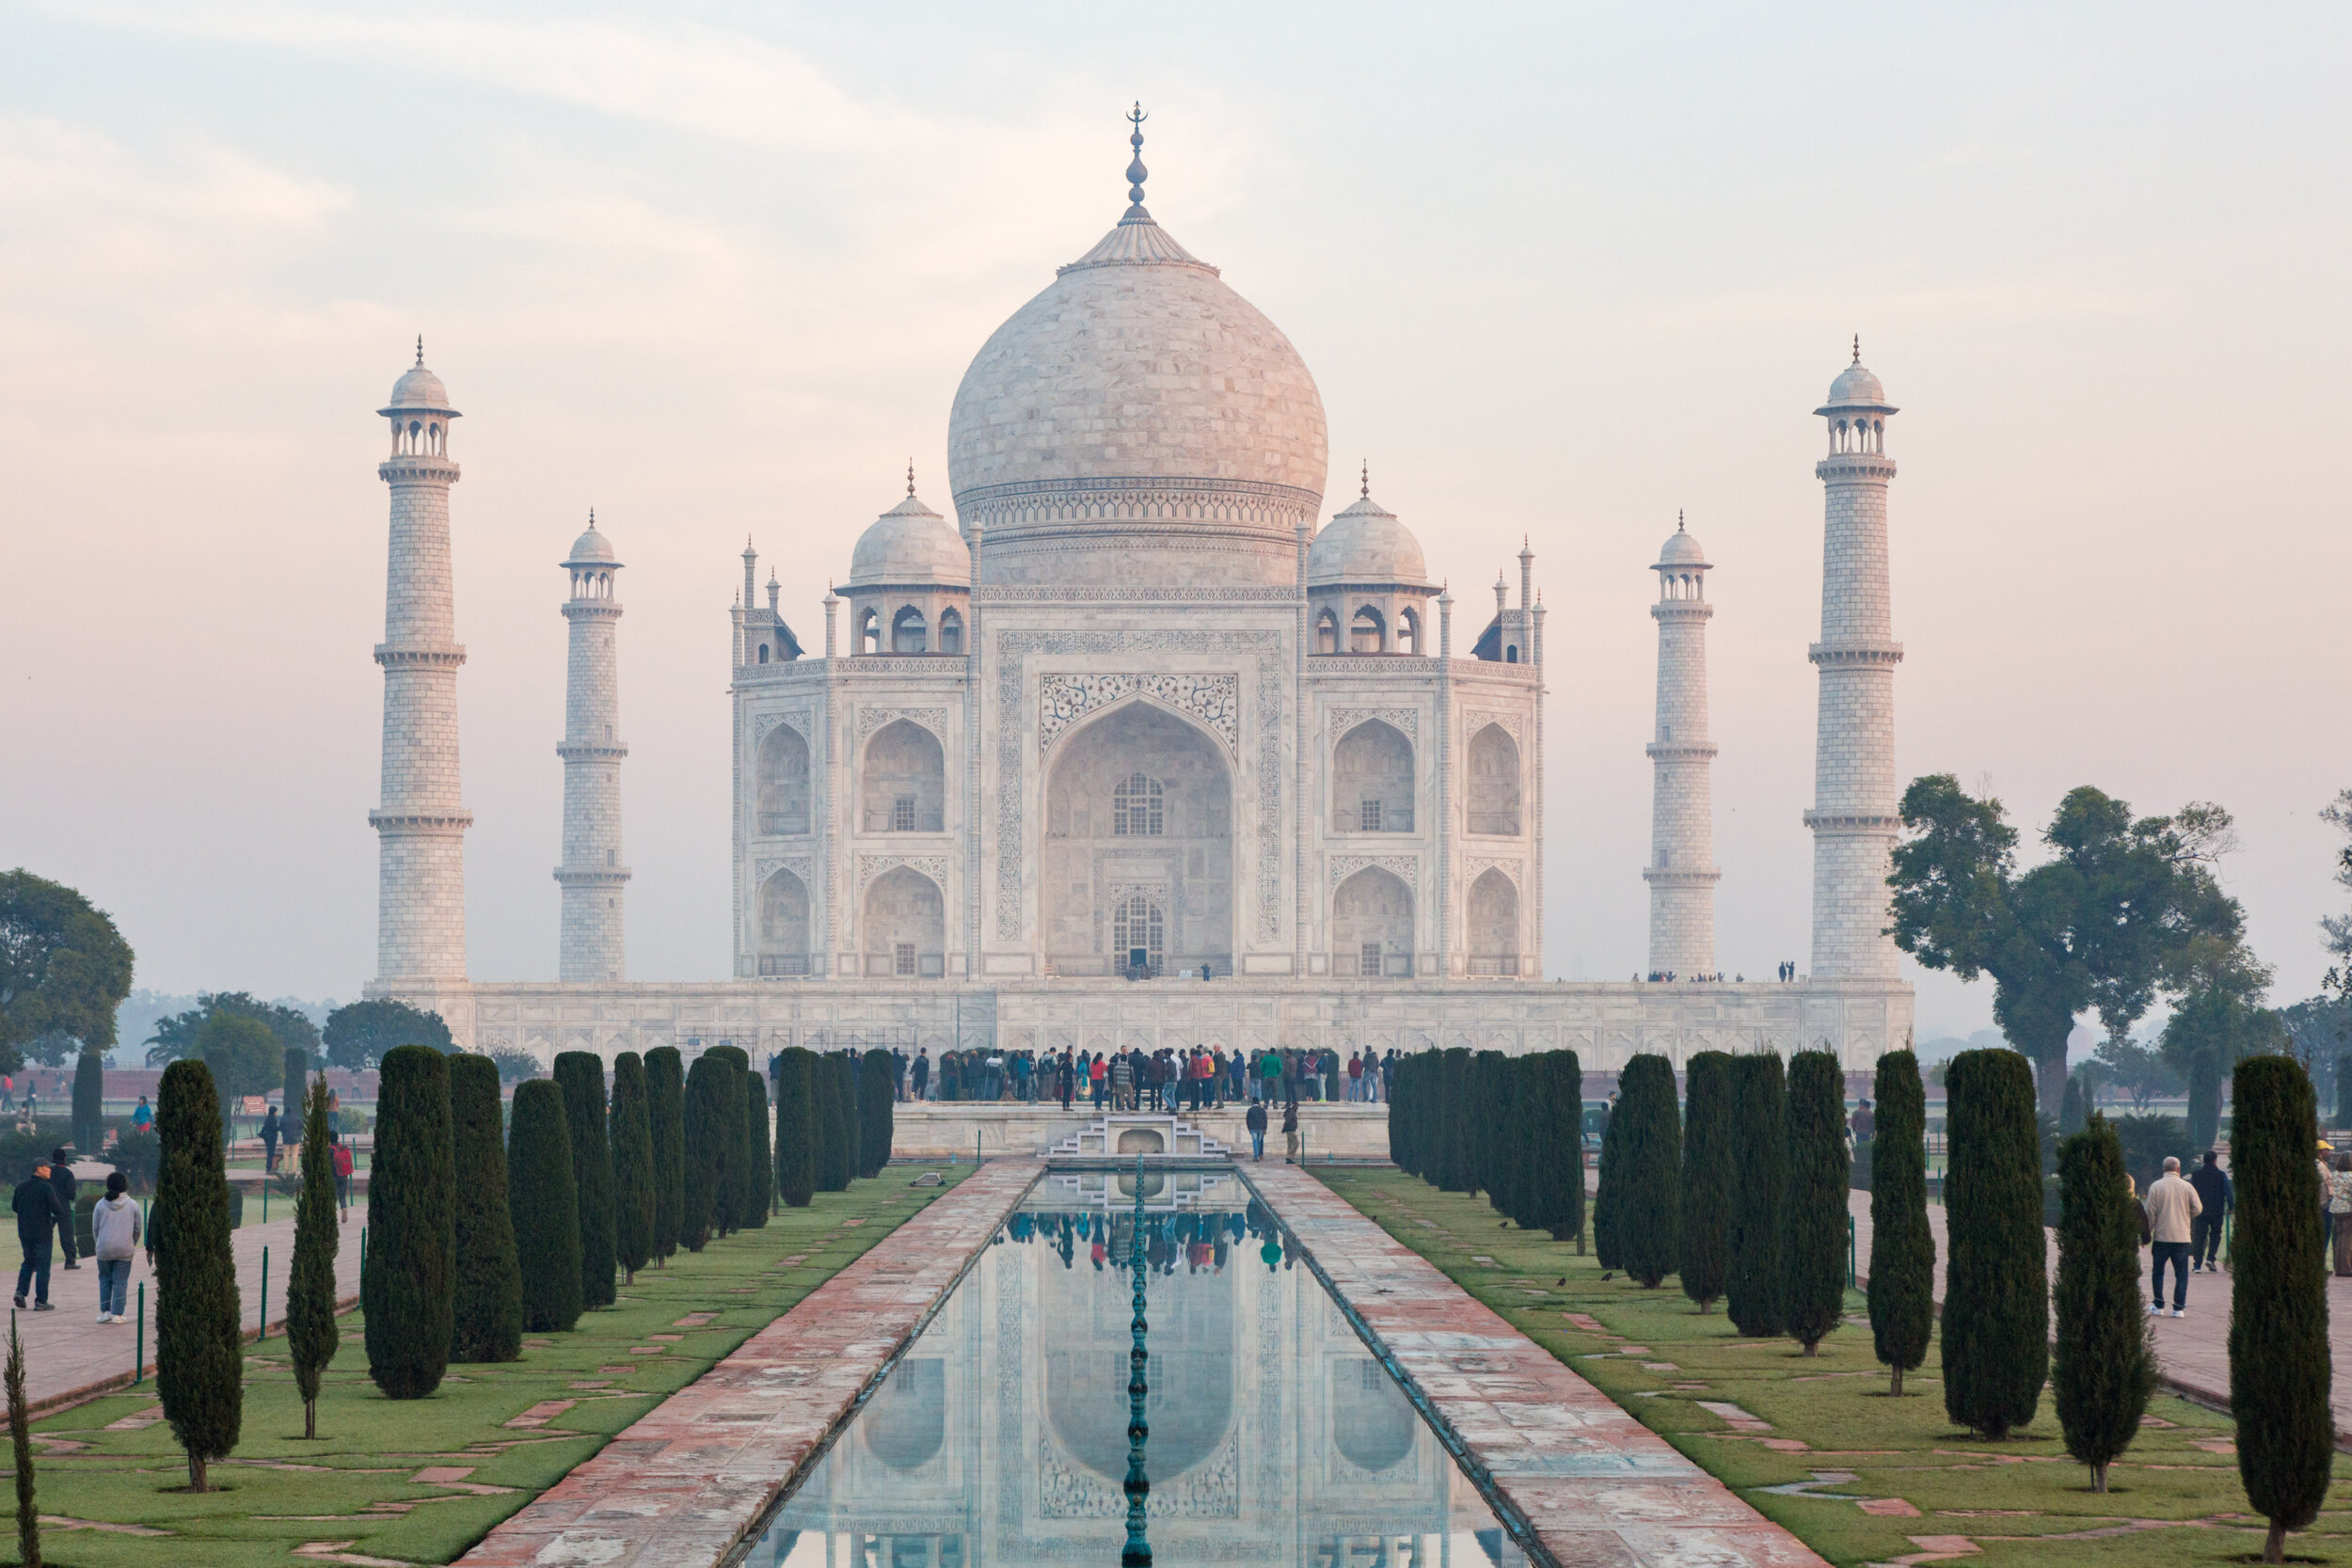 Taj Mahal 190210 074, image by Andrew Campbell Nelson.jpg